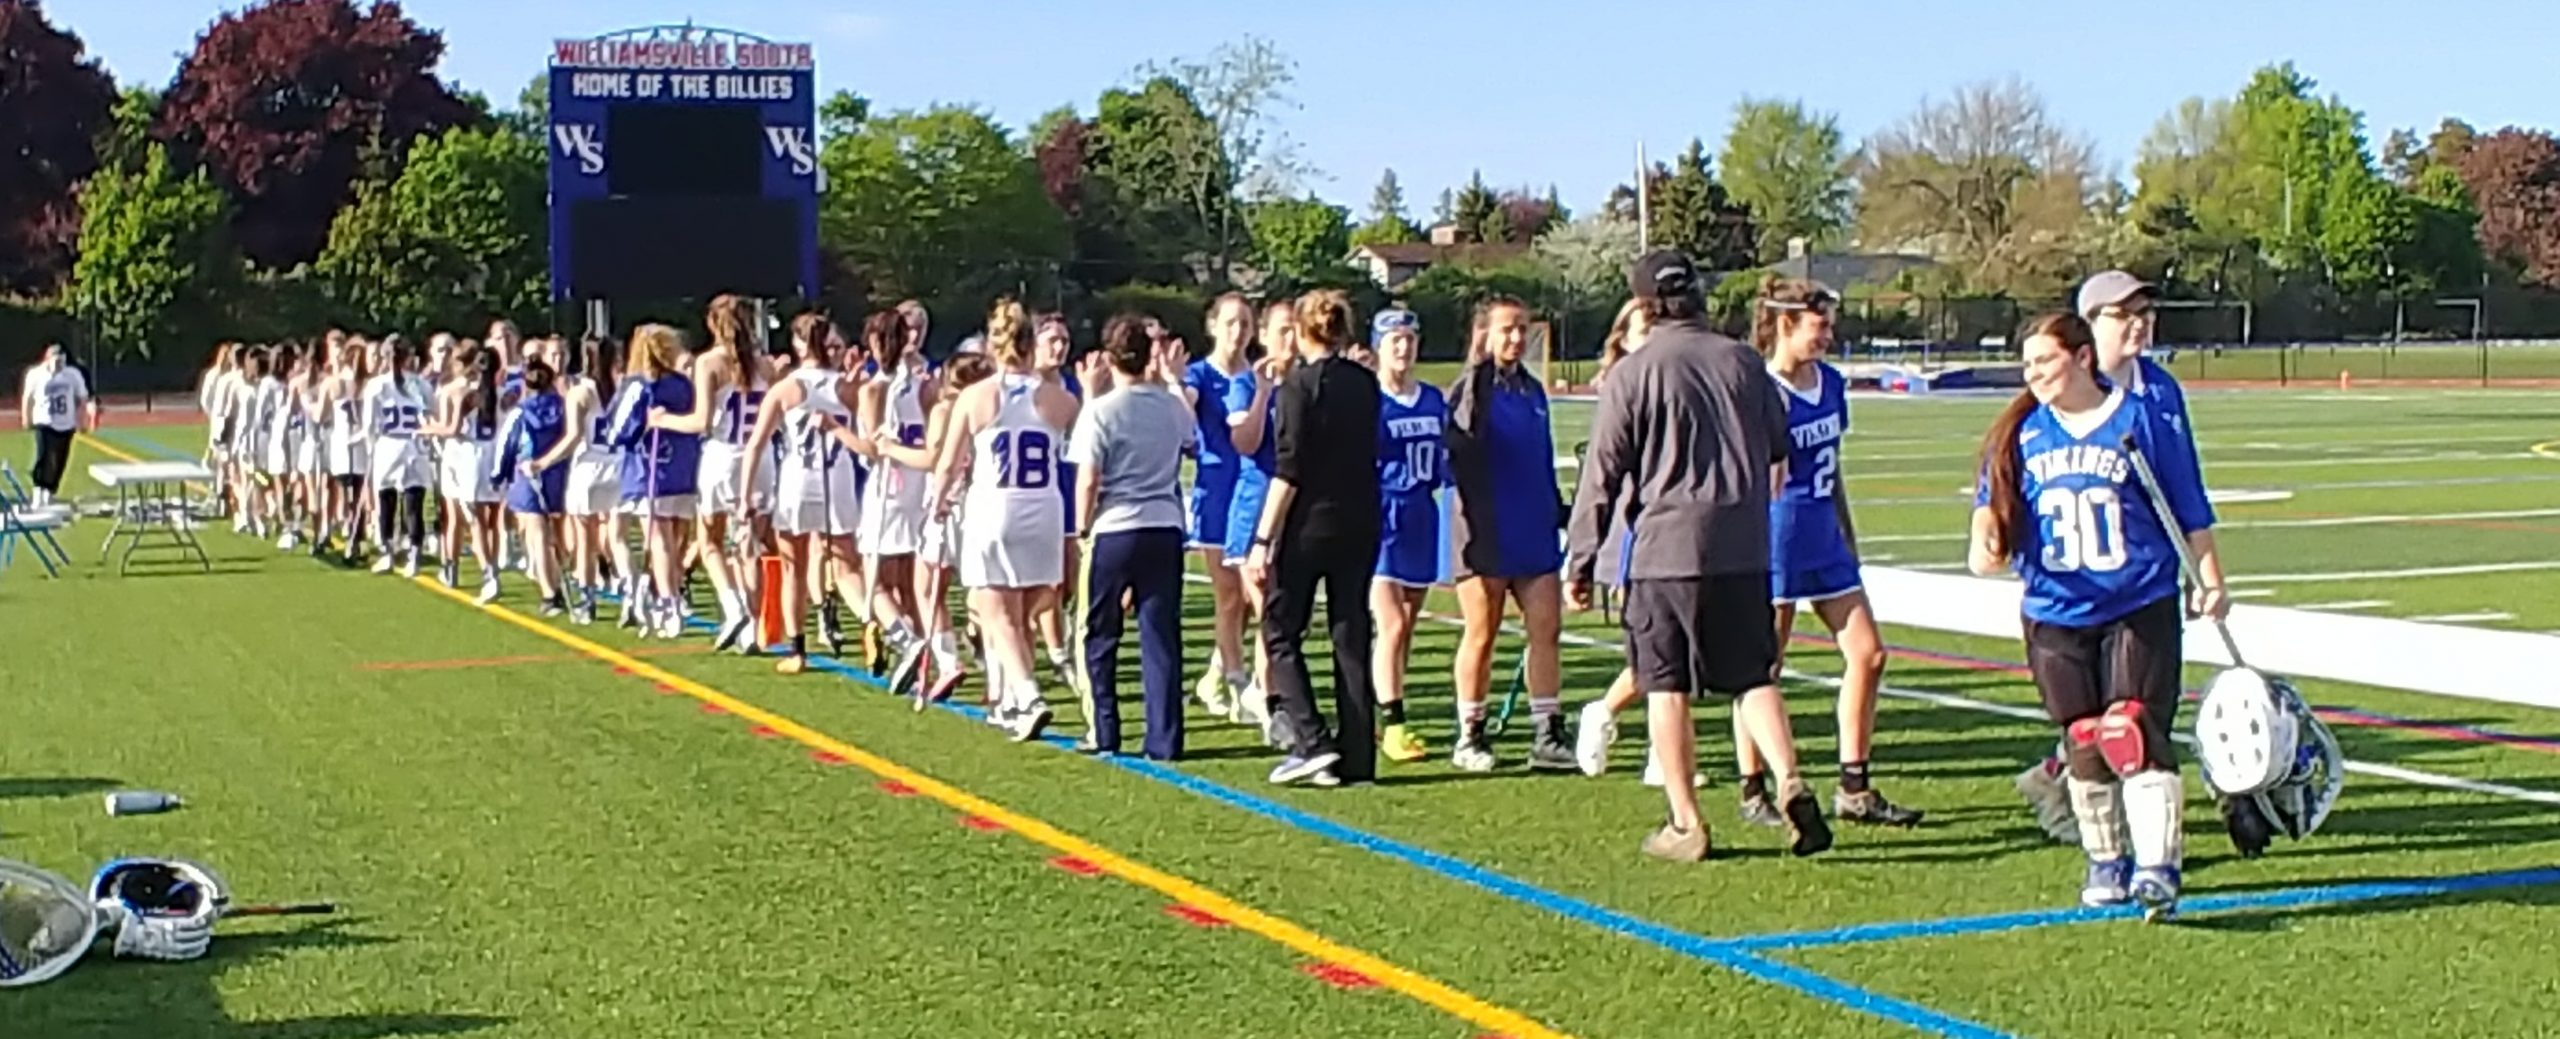 Lady Billies Lacrosse Moves On to Class C Semi-Finals